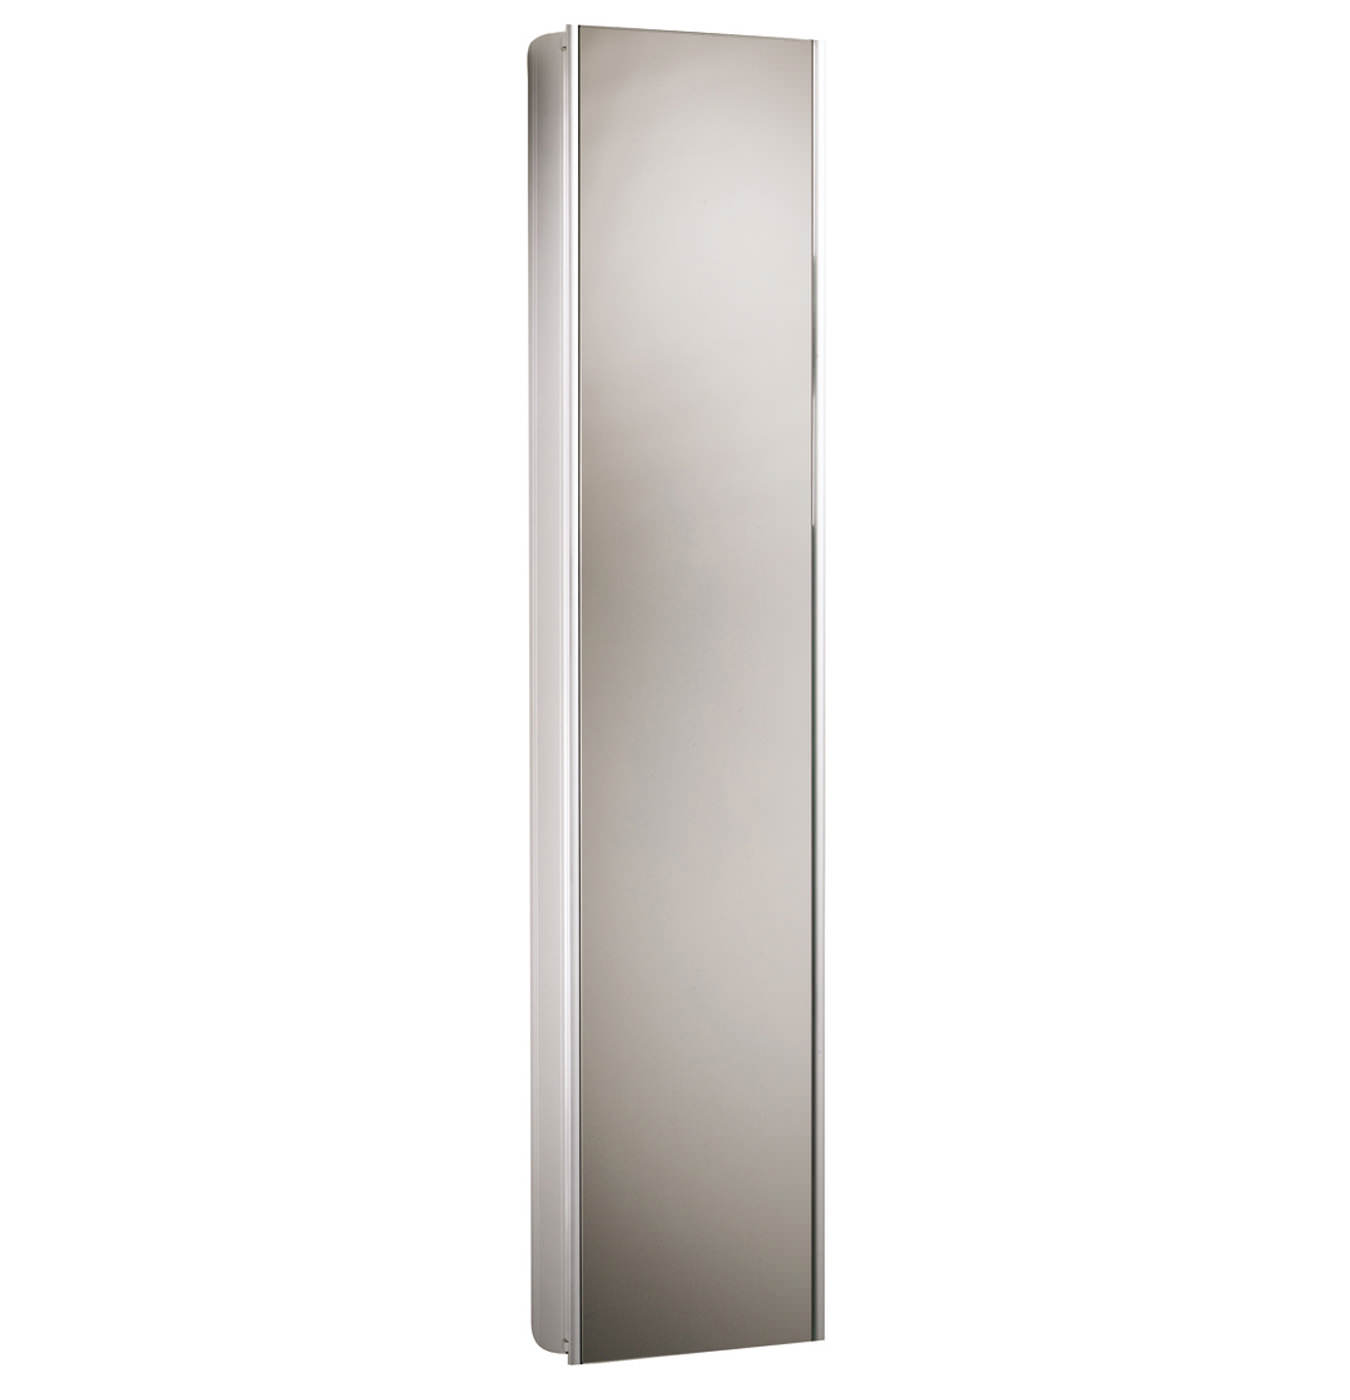 Ascension Reference Tall Mirror Door Wall Cabinet 315mm | AS315AL